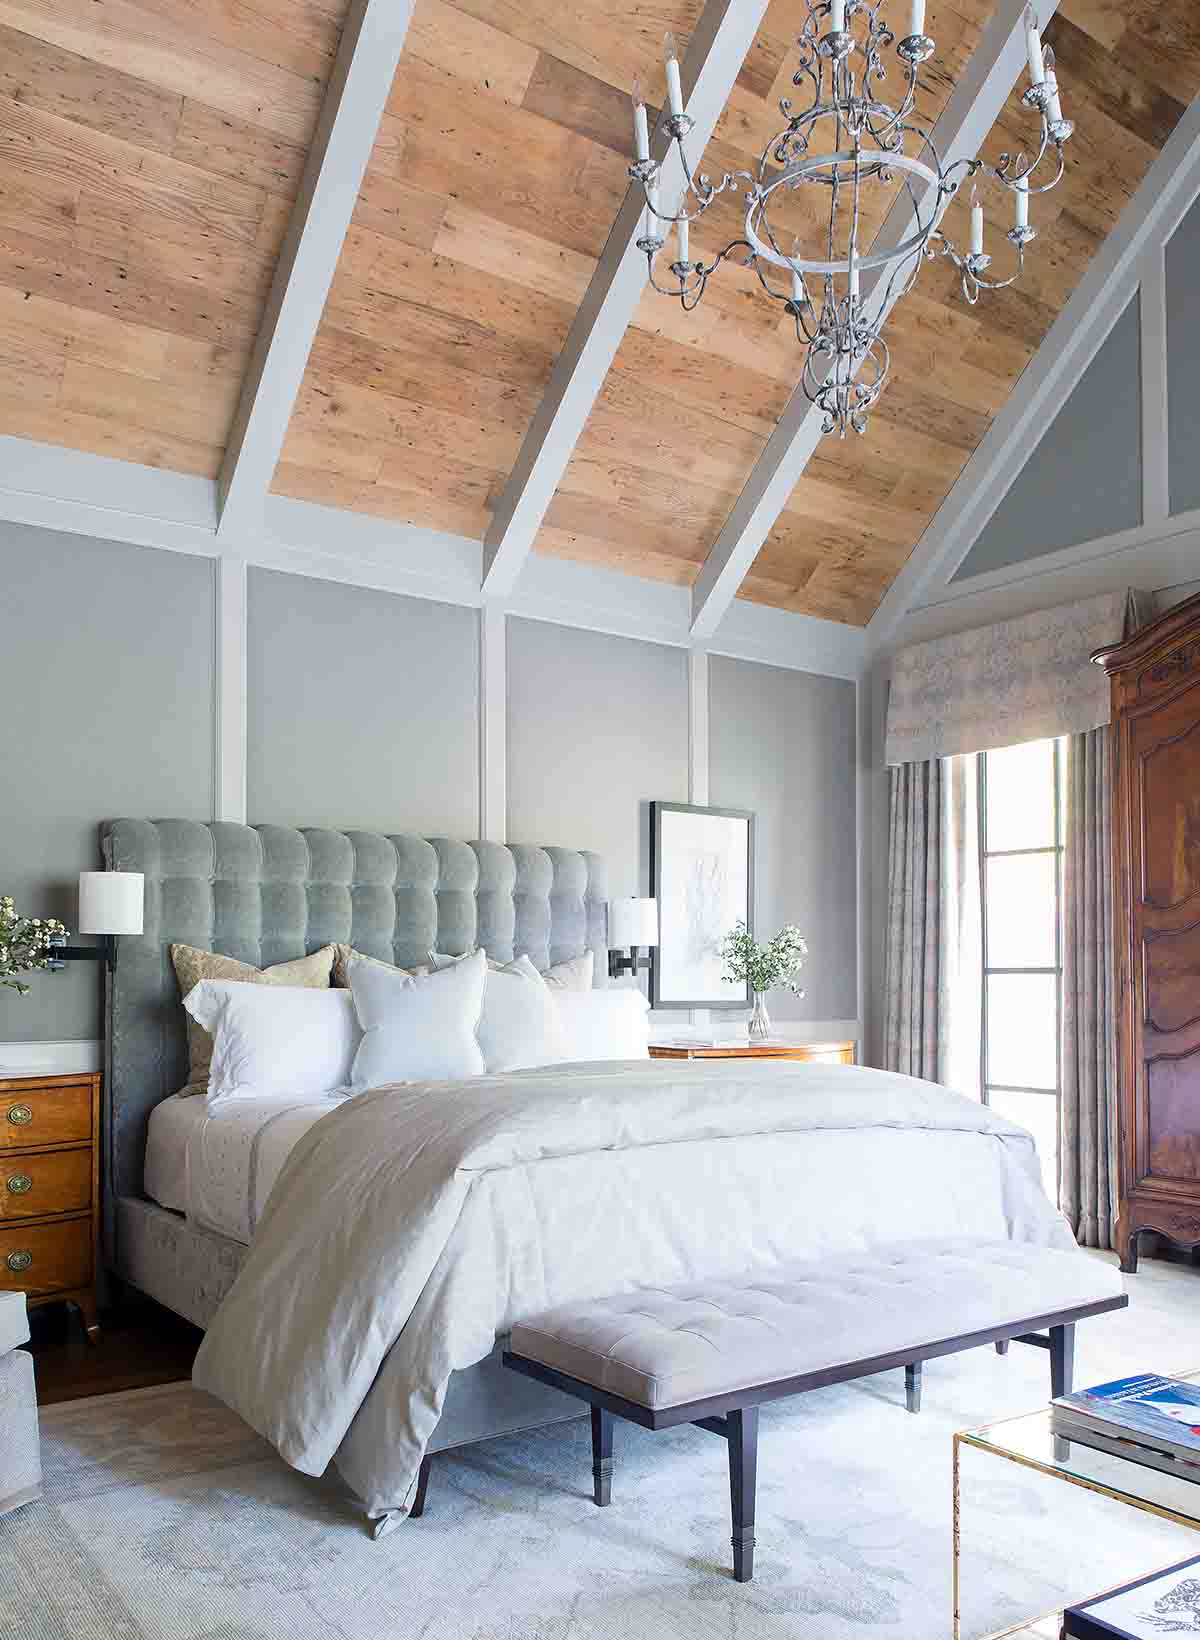 Wood-paneled Master Bedroom - Blackberry Farm Smoky Mountain Home - R.Higgins Interiors Design